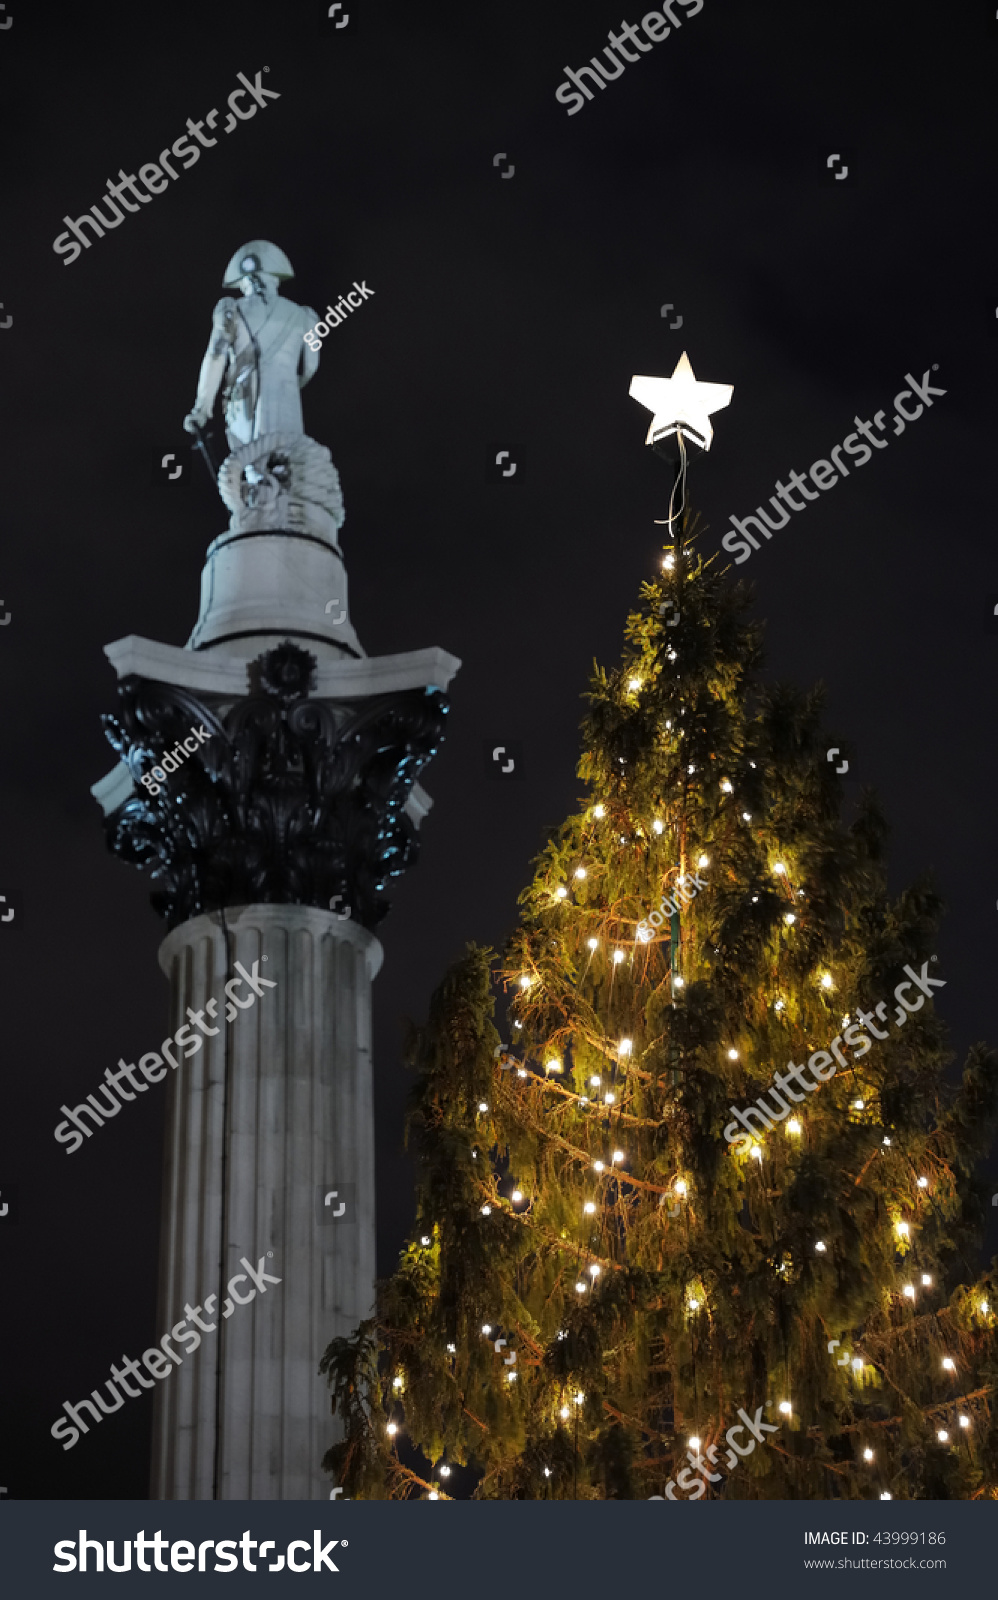 Norwegian Christmas Tree Trafalgar Square London Stock Photo (Edit ...